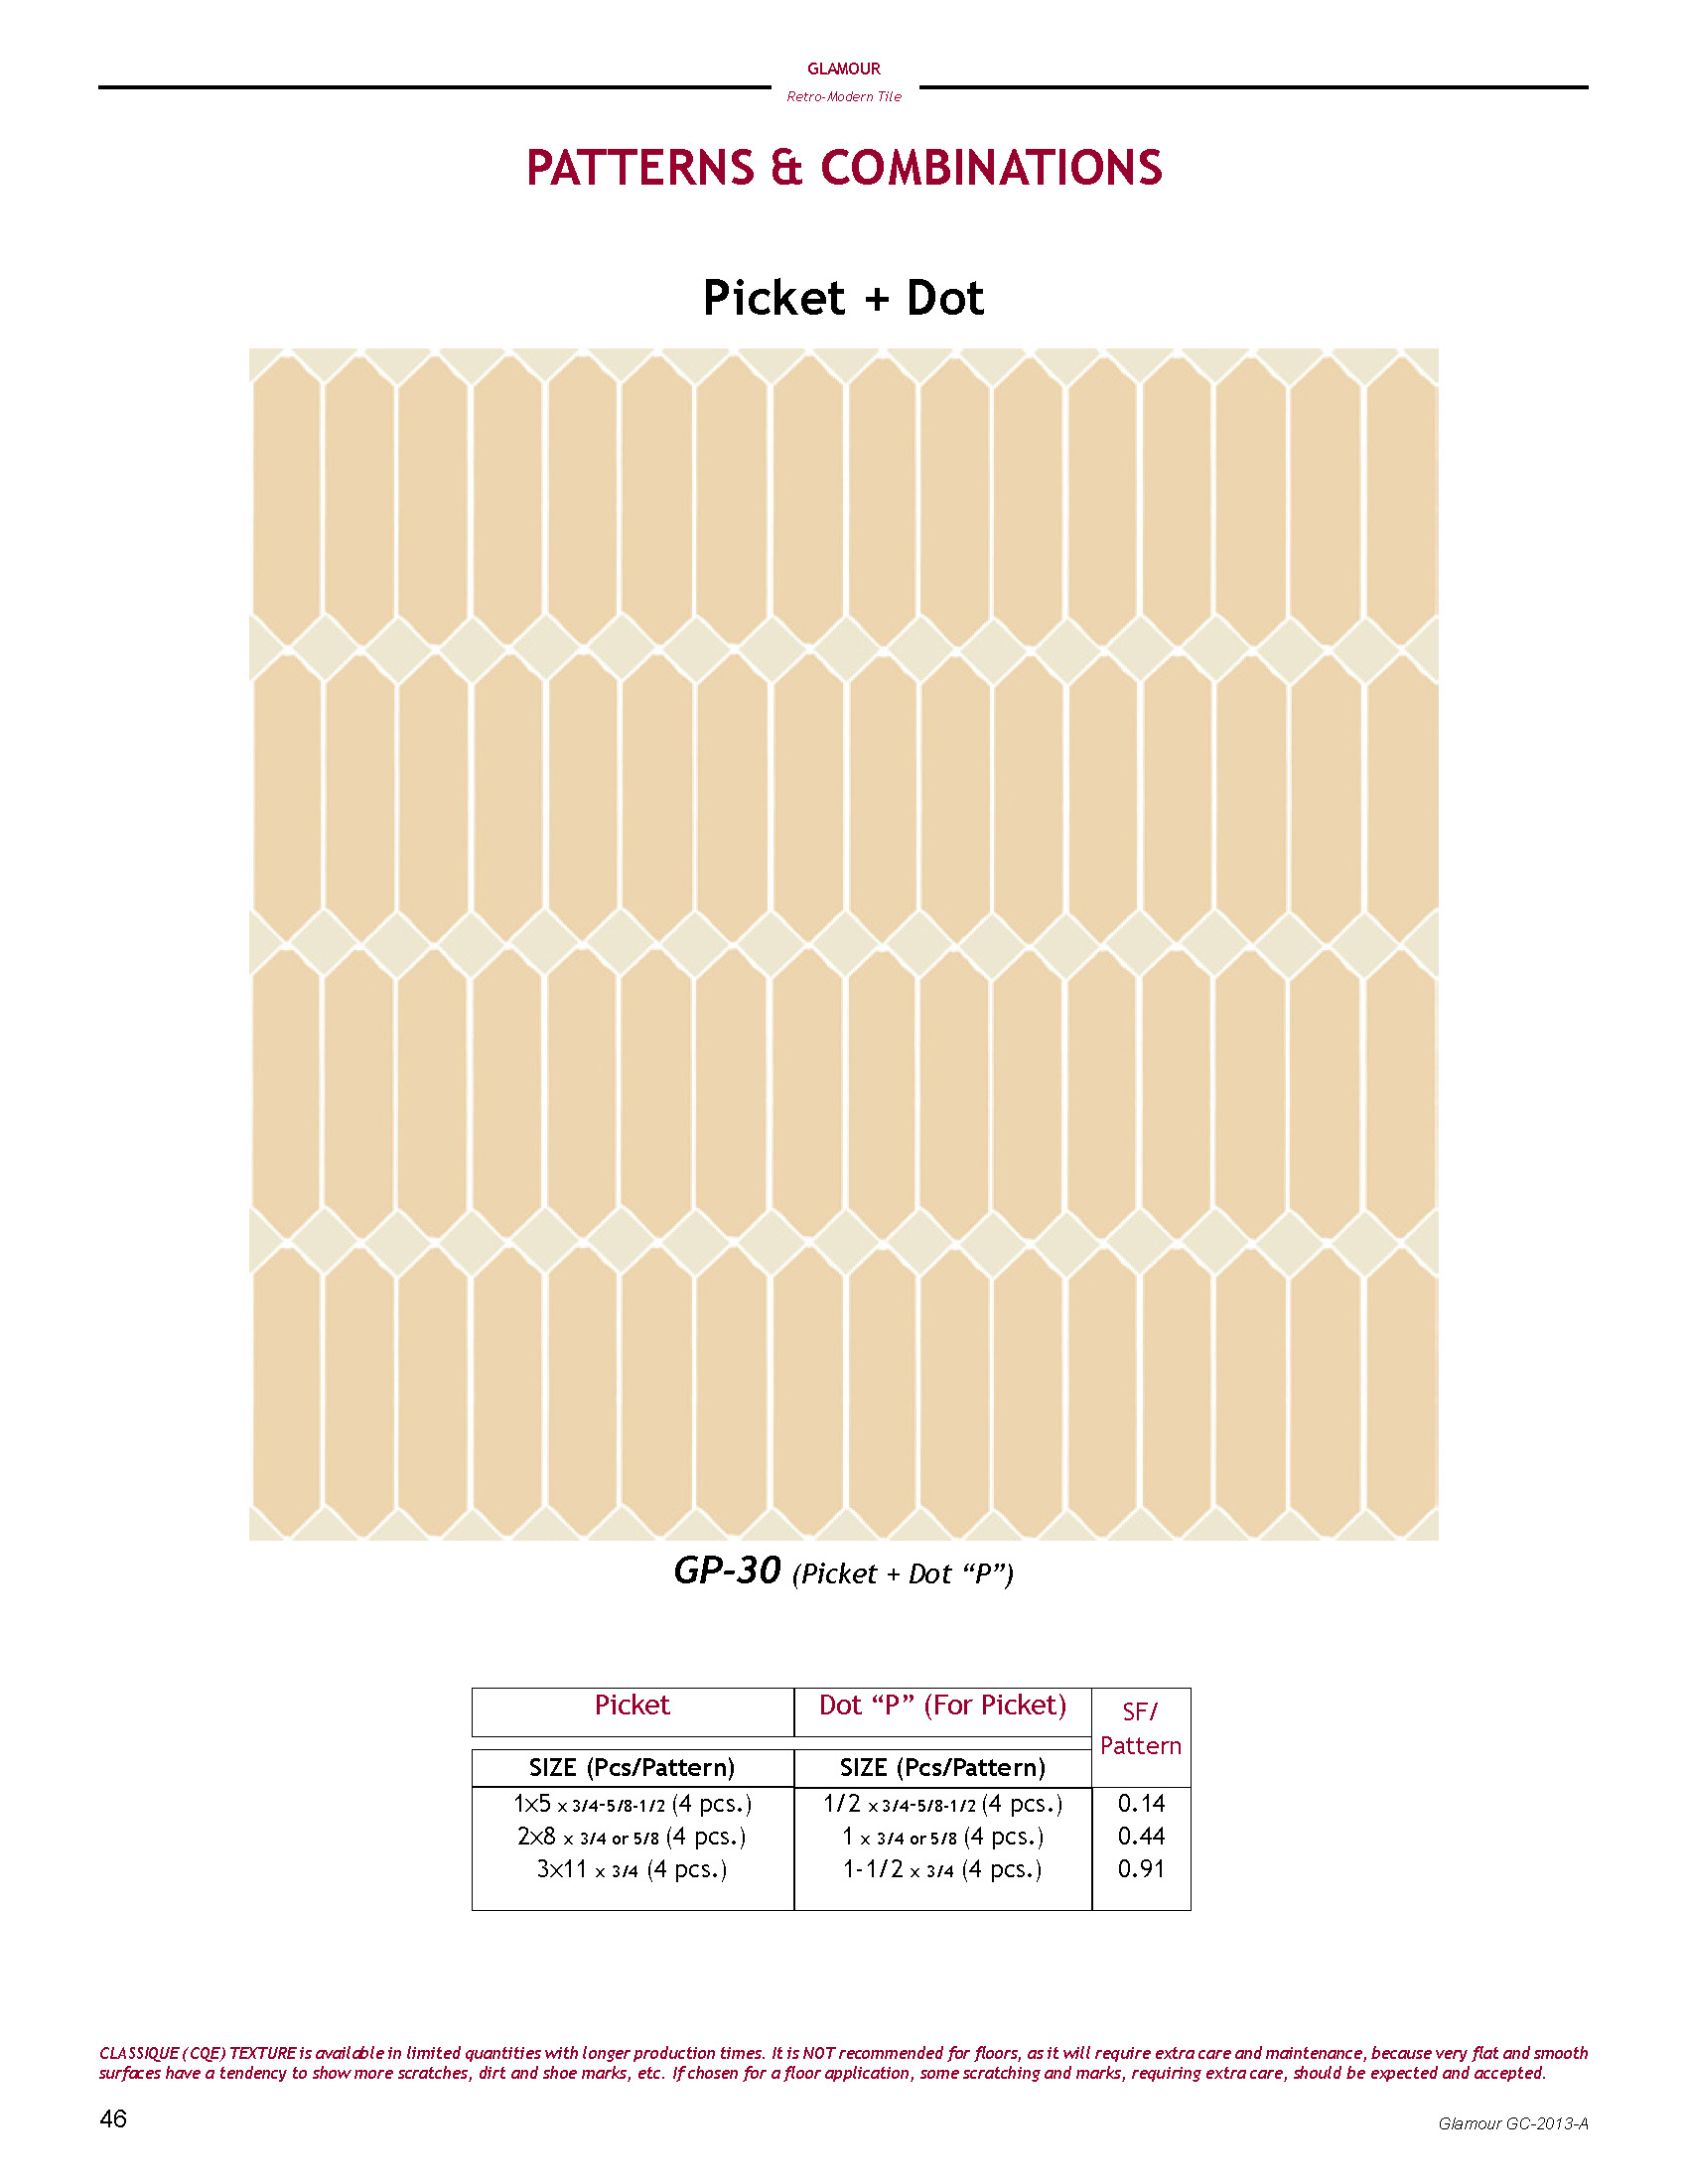 GlamourCat2013-A (3-Patterns&Comb-Pag25to59-HighRes)_Page_22.jpg